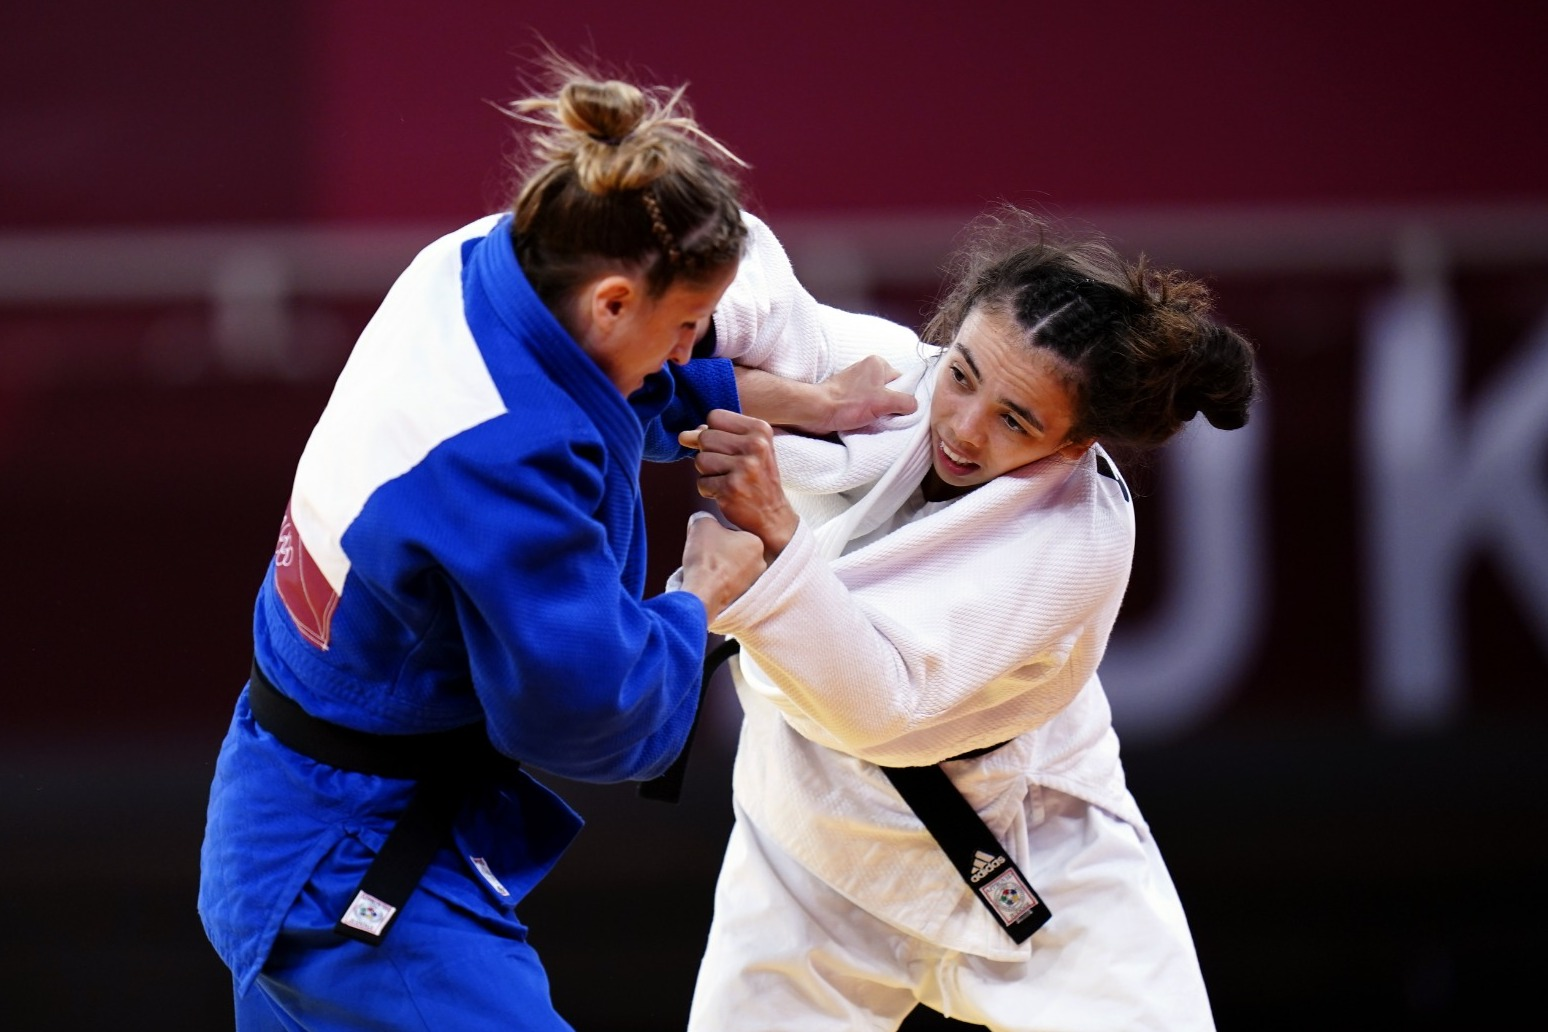 Chelsie Giles wins Team GB's first medal of Tokyo 2020 with judo bronze